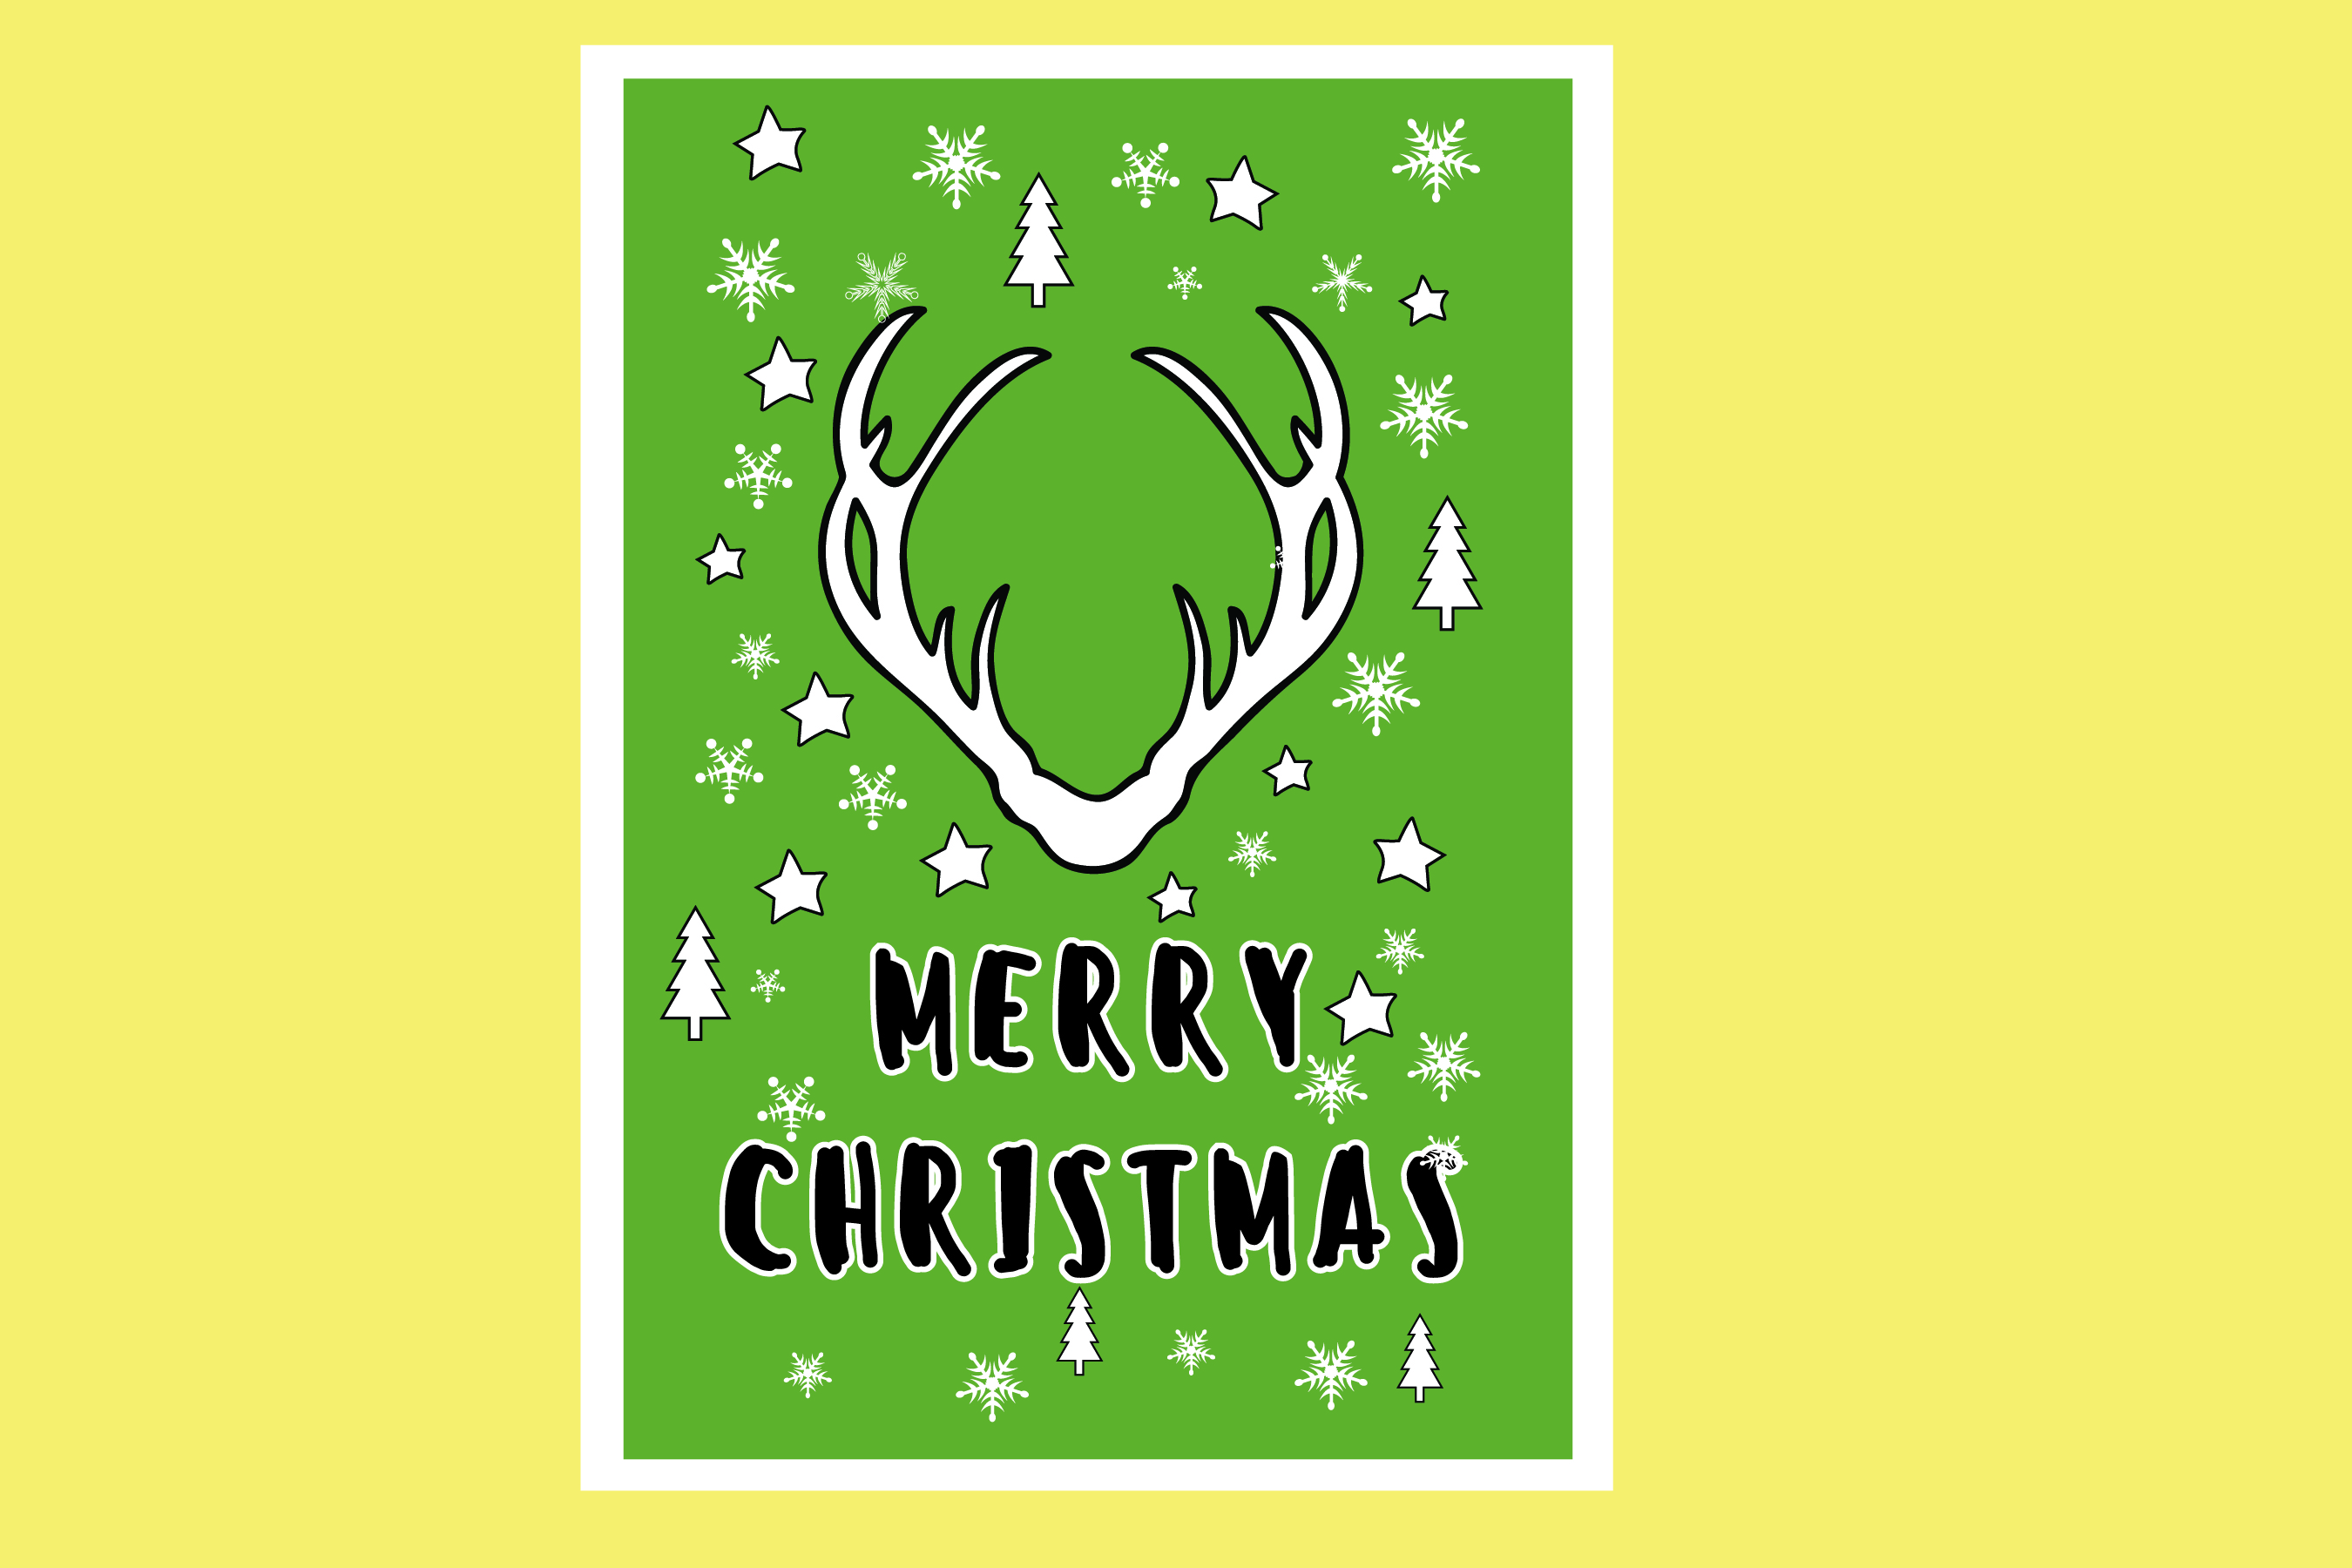 AA25-Christmas Greetings cards 6 Designs - SVG Bundle example image 4